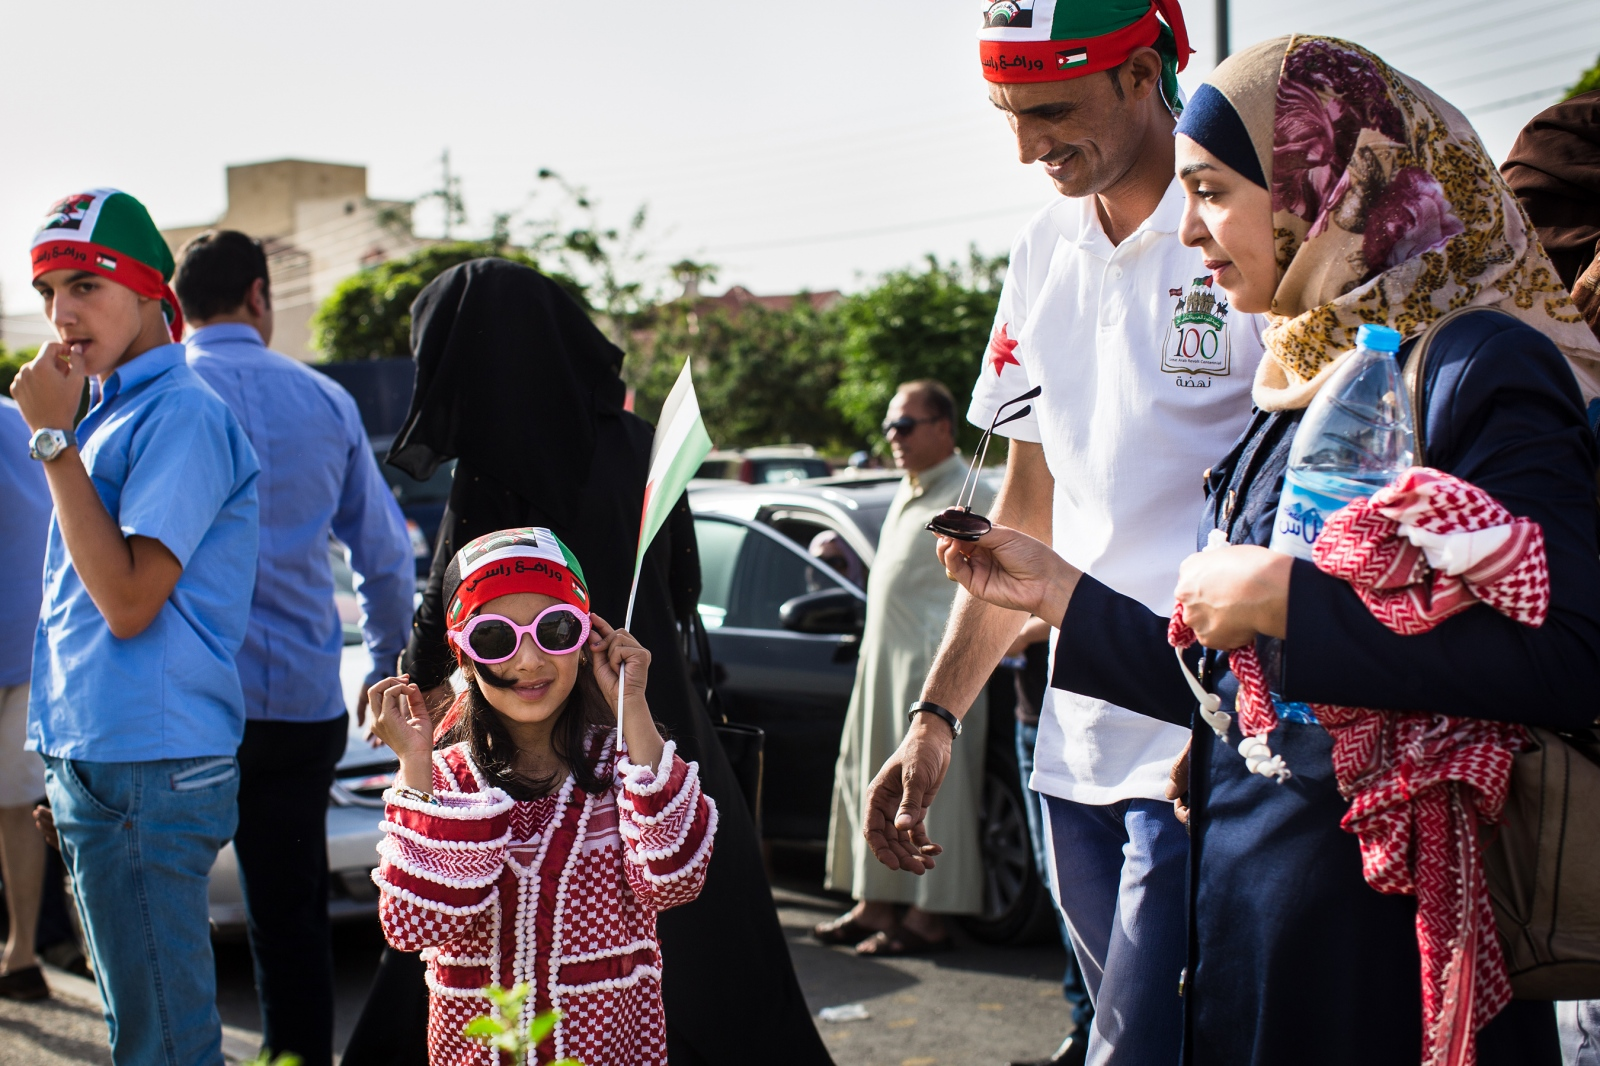 A young Jordanian girl, wearing a dress made out of a traditional kuffiyeh, tries on her pink sunglasses as she and her parents head to a festival celebrating the 100th anniversary of the Great Arab Revolt in Amman, Jordan, on June 3, 2016.